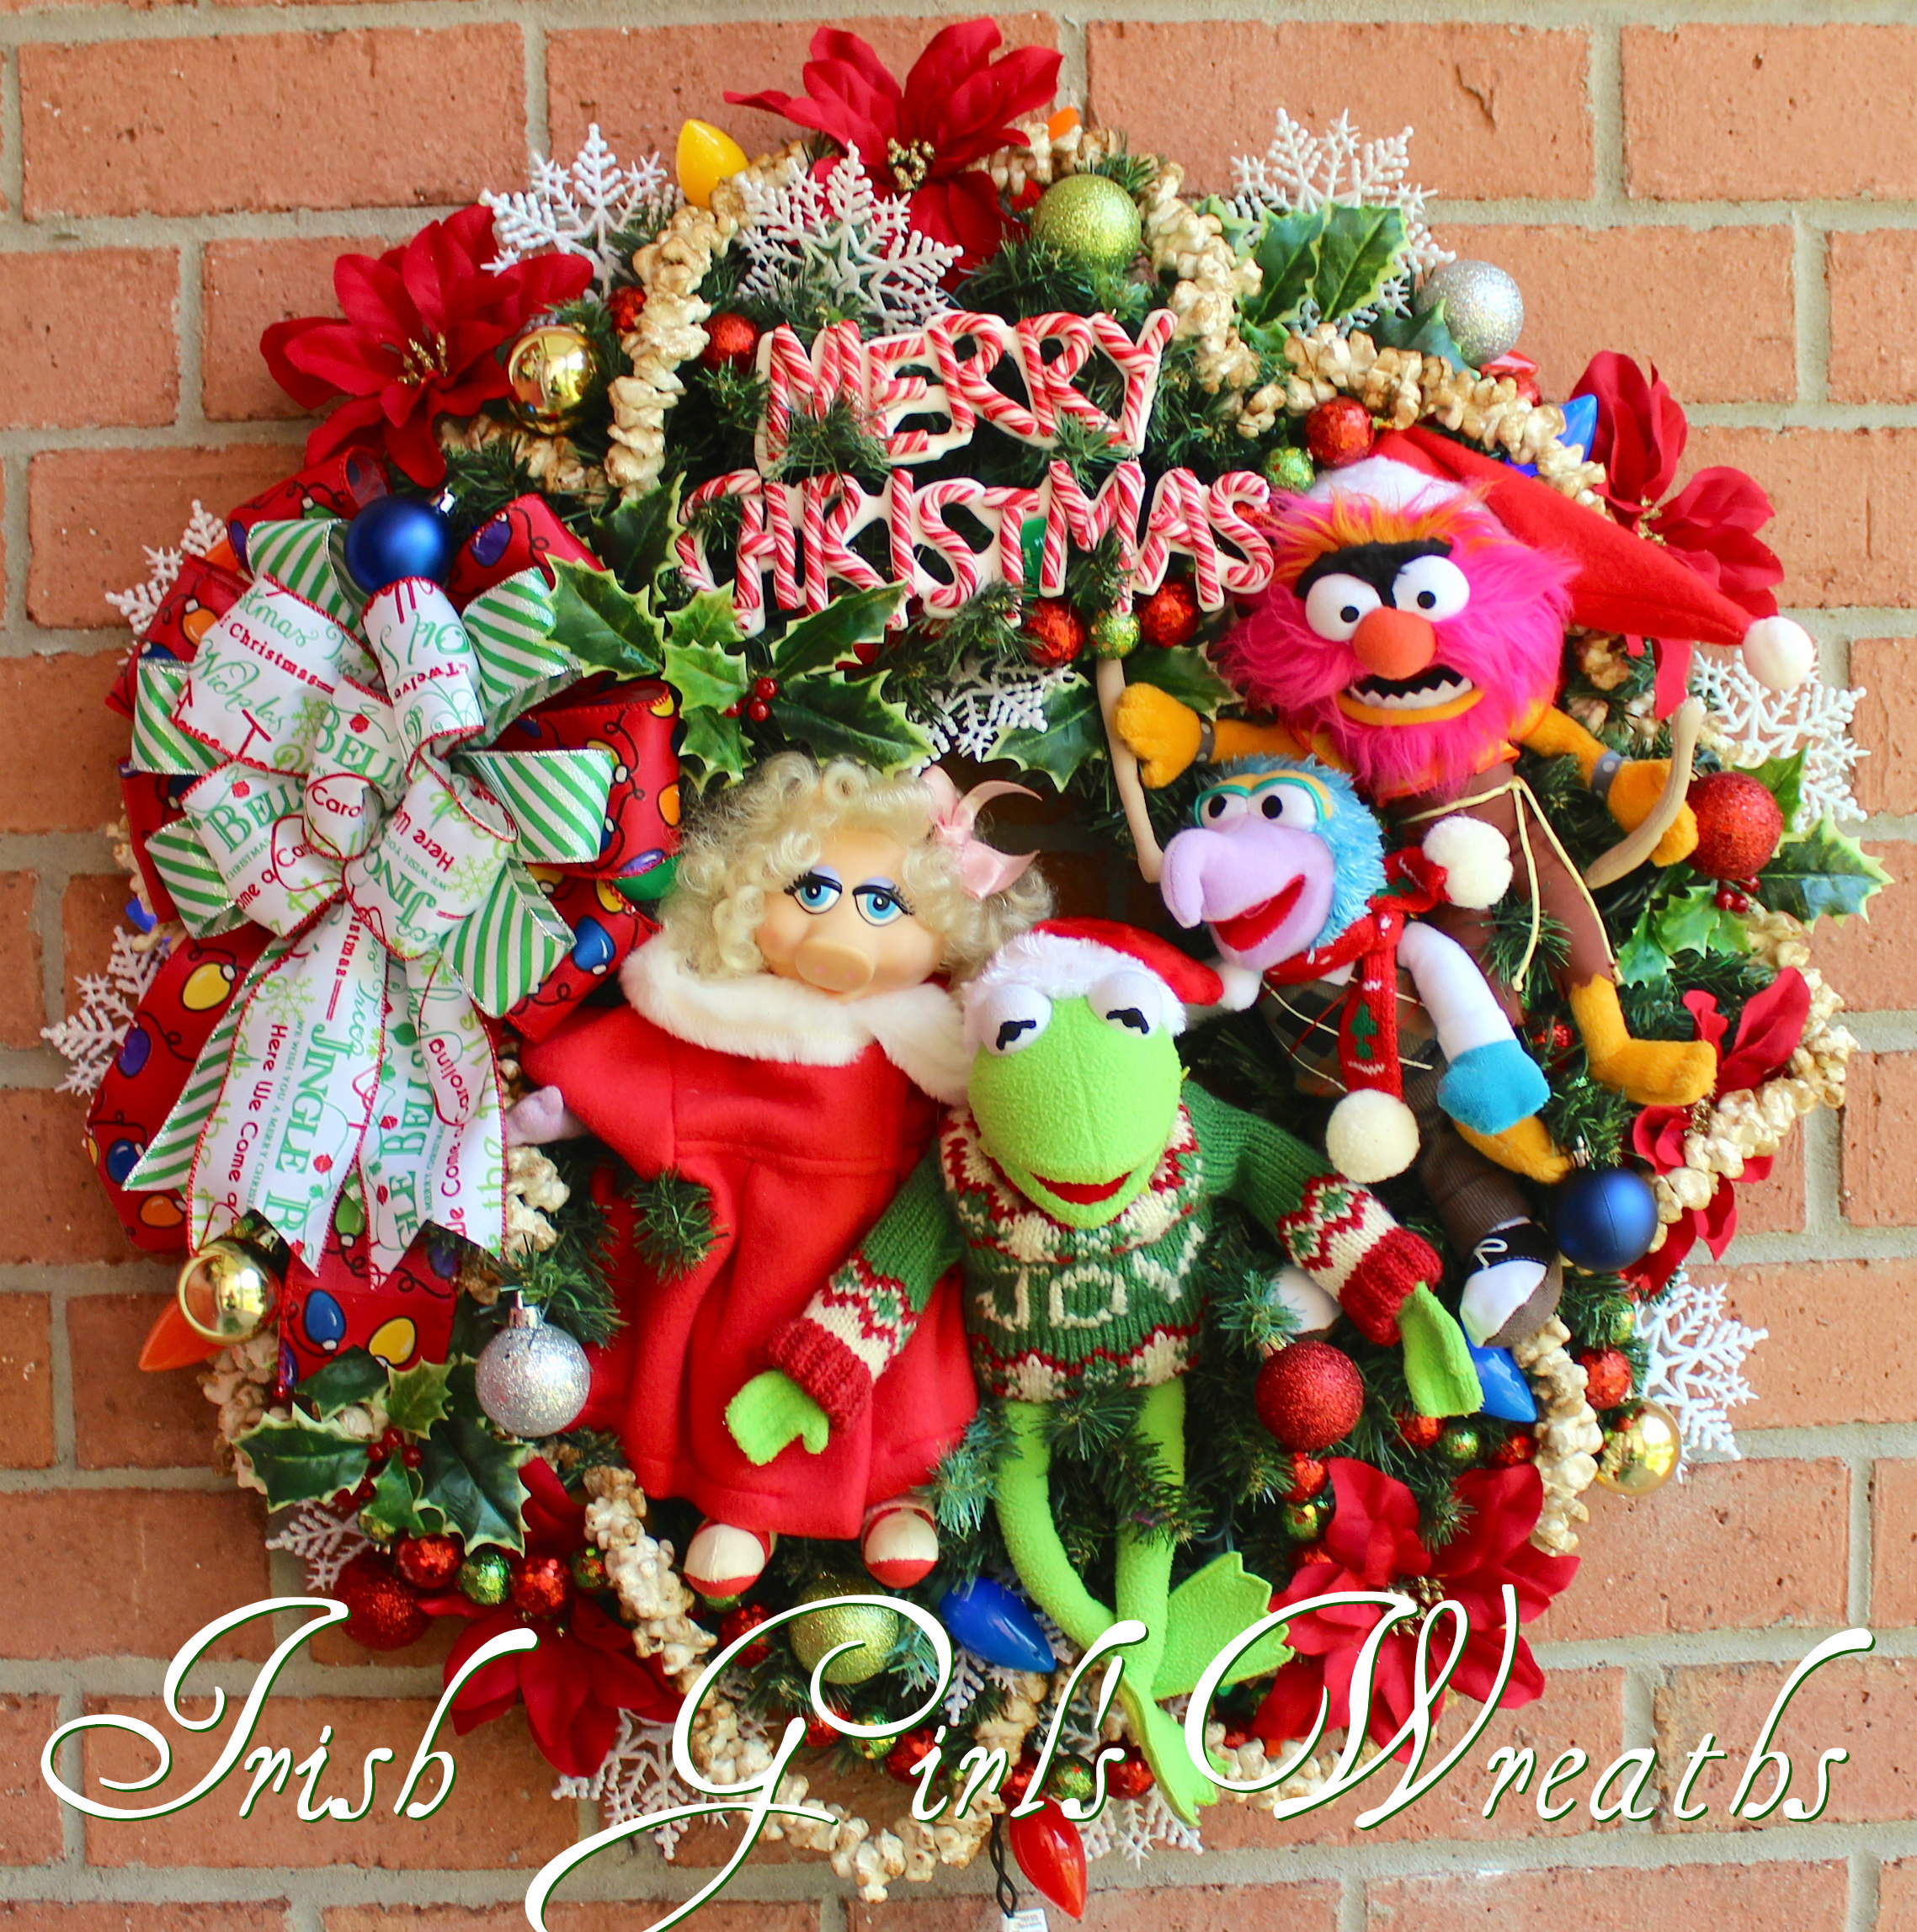 Muppets Merry Christmas Wreath starring Kermit, Miss Piggy, Gonzo and Animal, Custom for Cheri